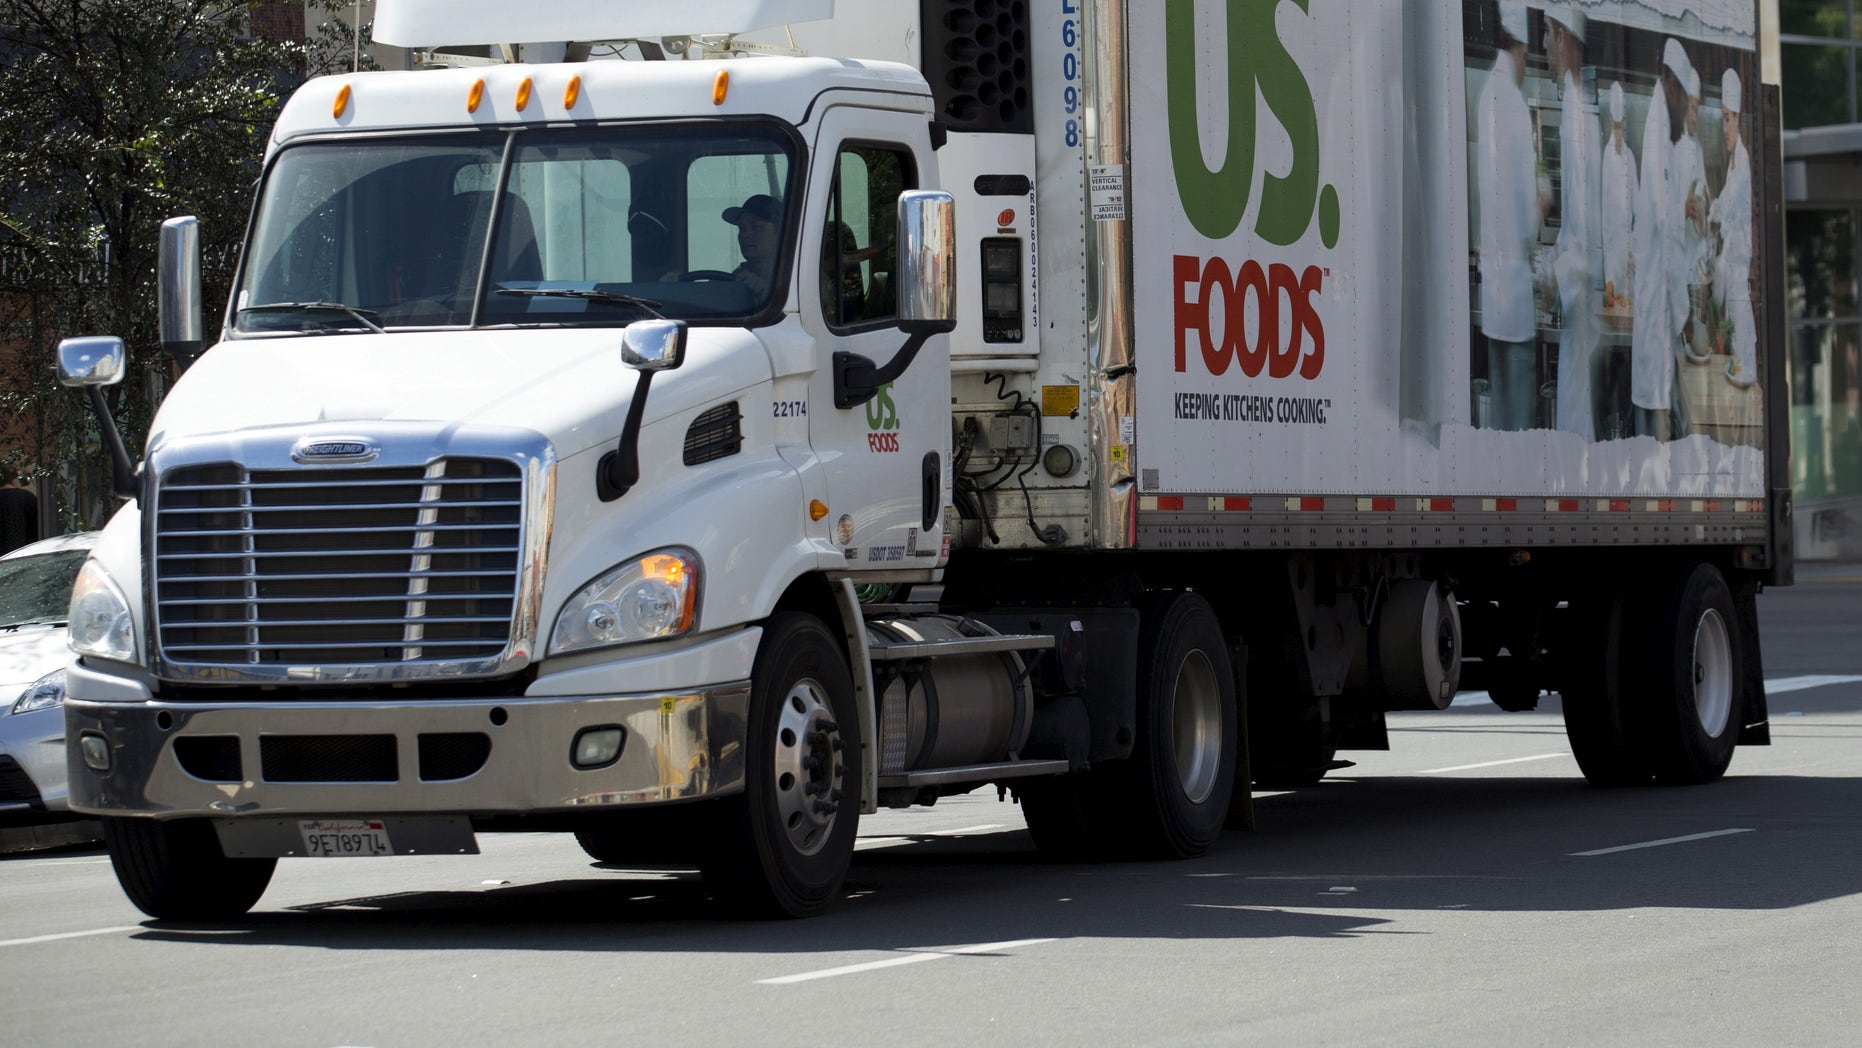 """A US Foods delivery truck in San Diego. Members of Congress may soon consider a proposal to allow a 5-foot extension to 28-foot less-than-truckload (LTL) twin trailers, also known as """"twin 28s."""""""